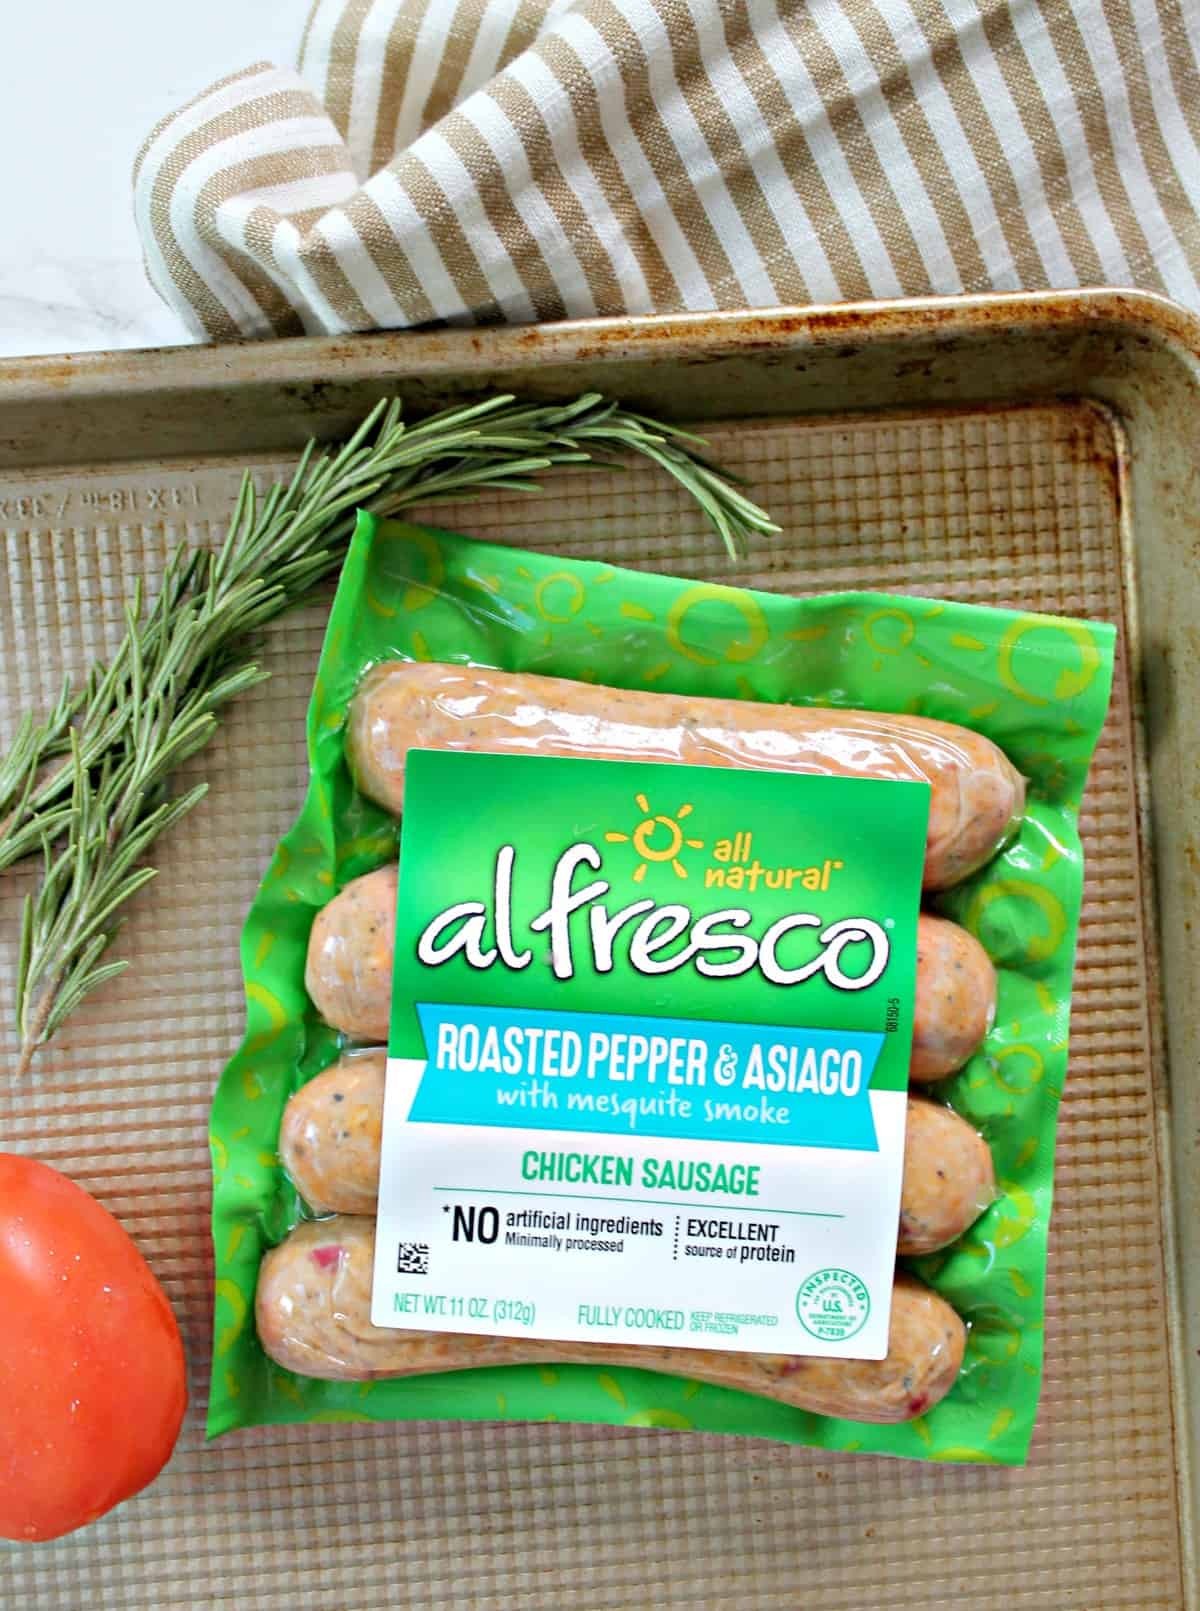 Package of al fresco chicken sausage on pan.